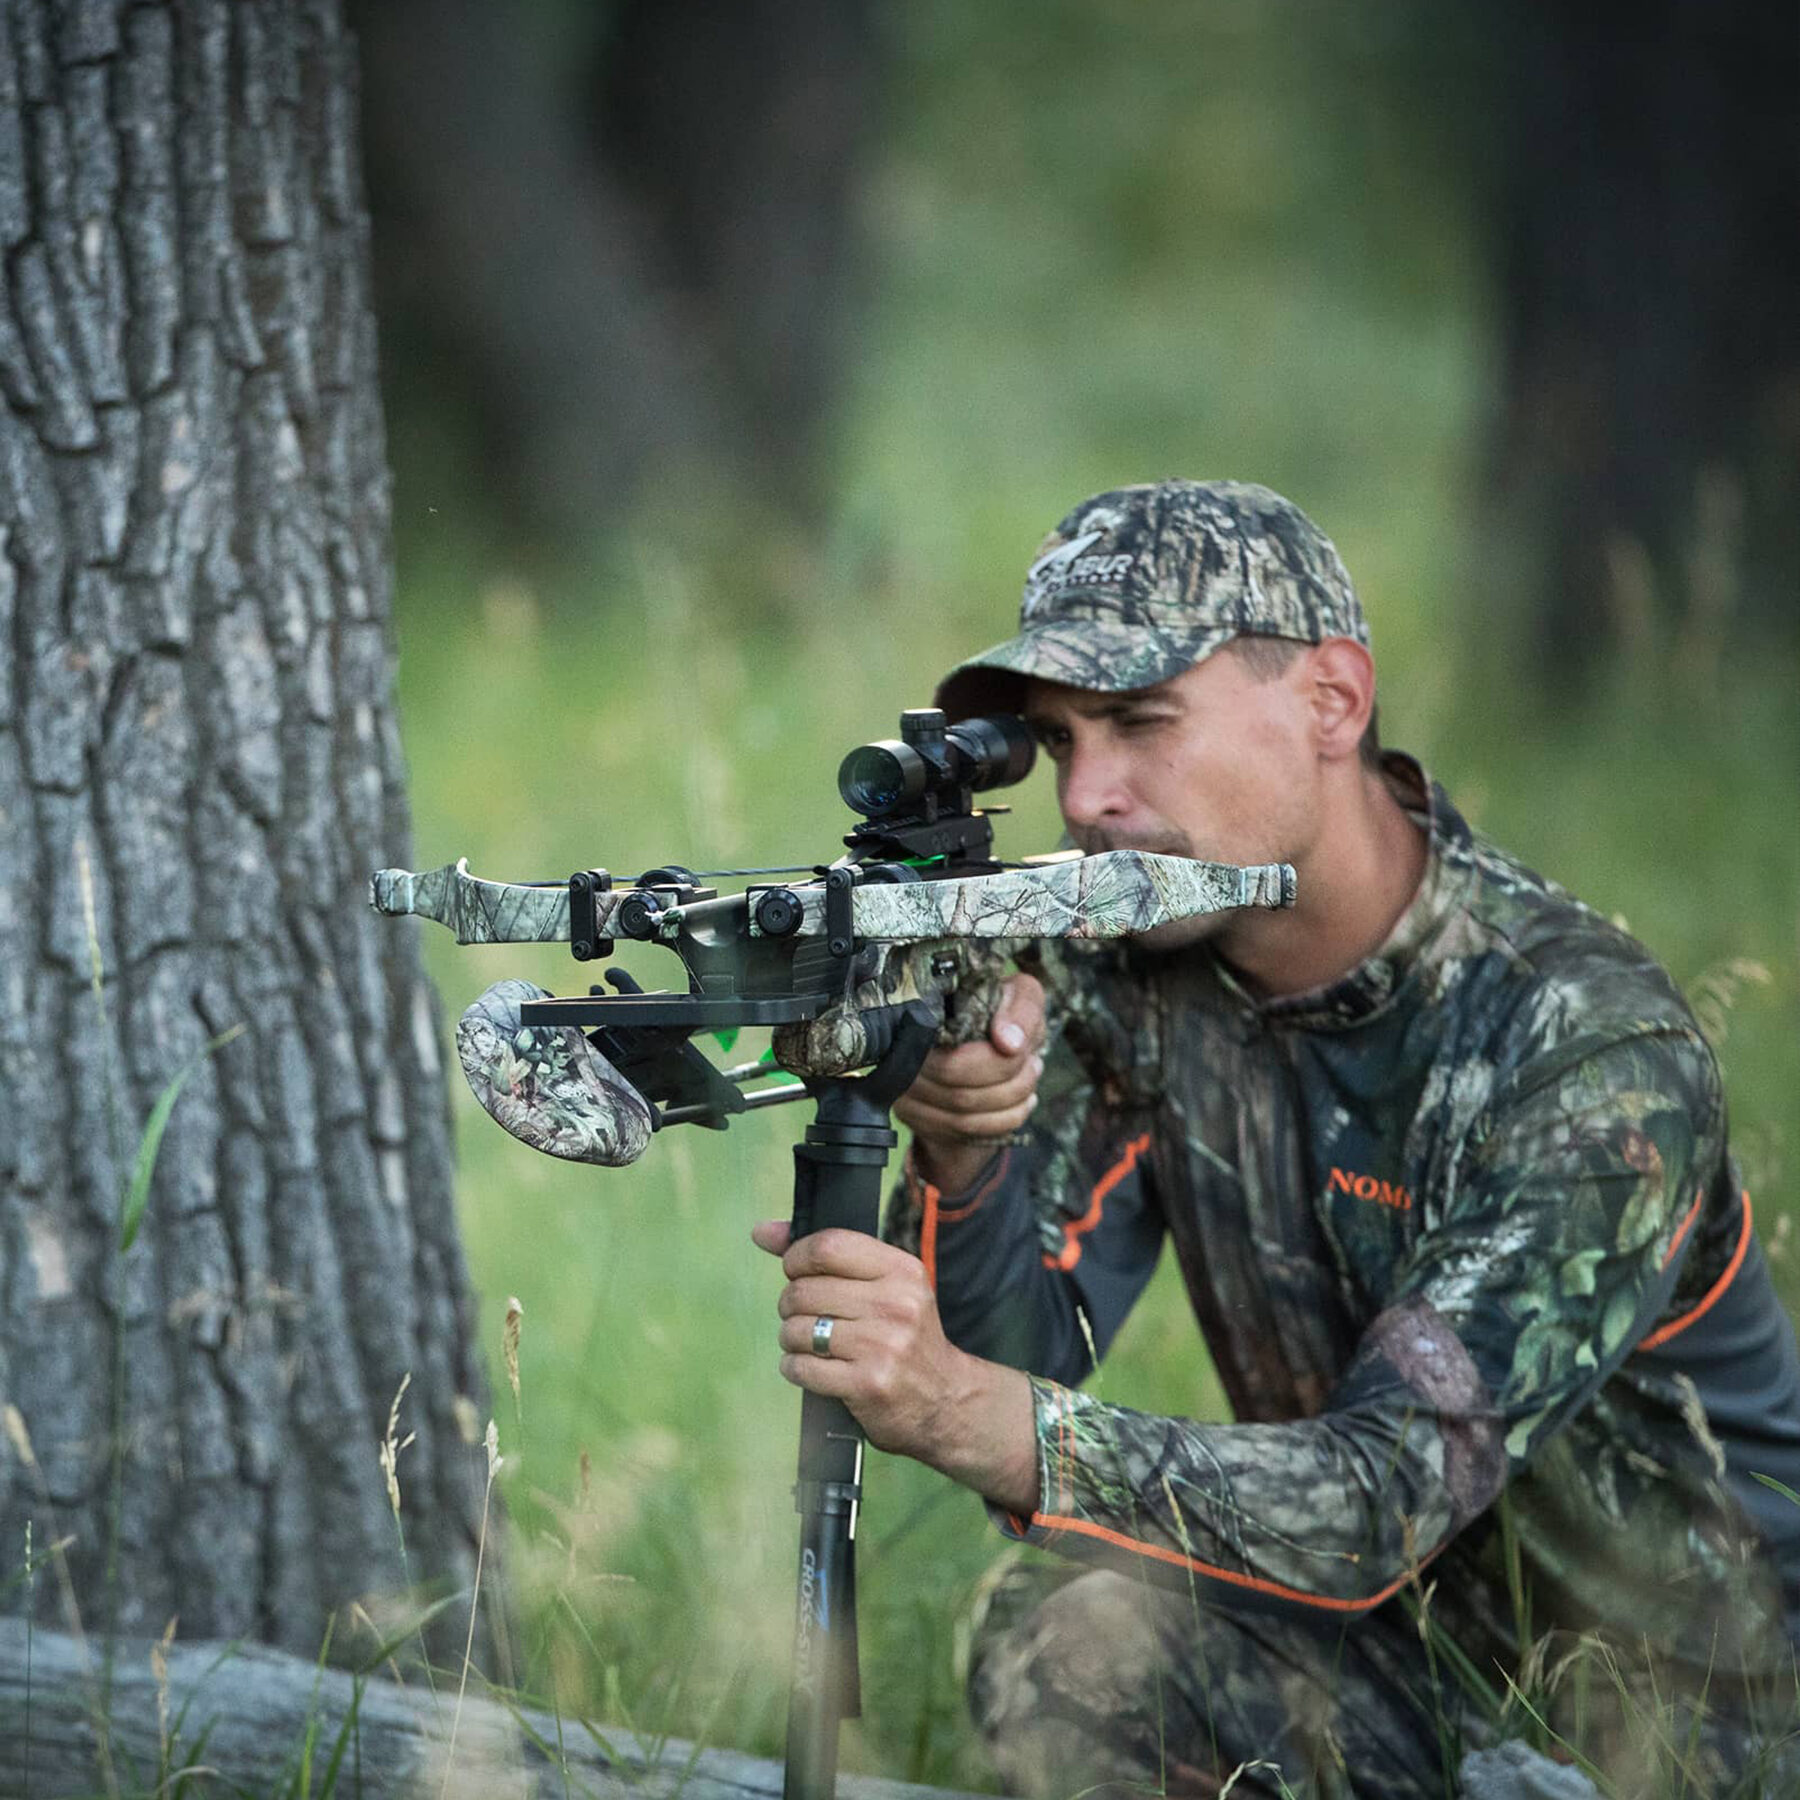 hunter taking aim with a micro 340td mounted on cross stix